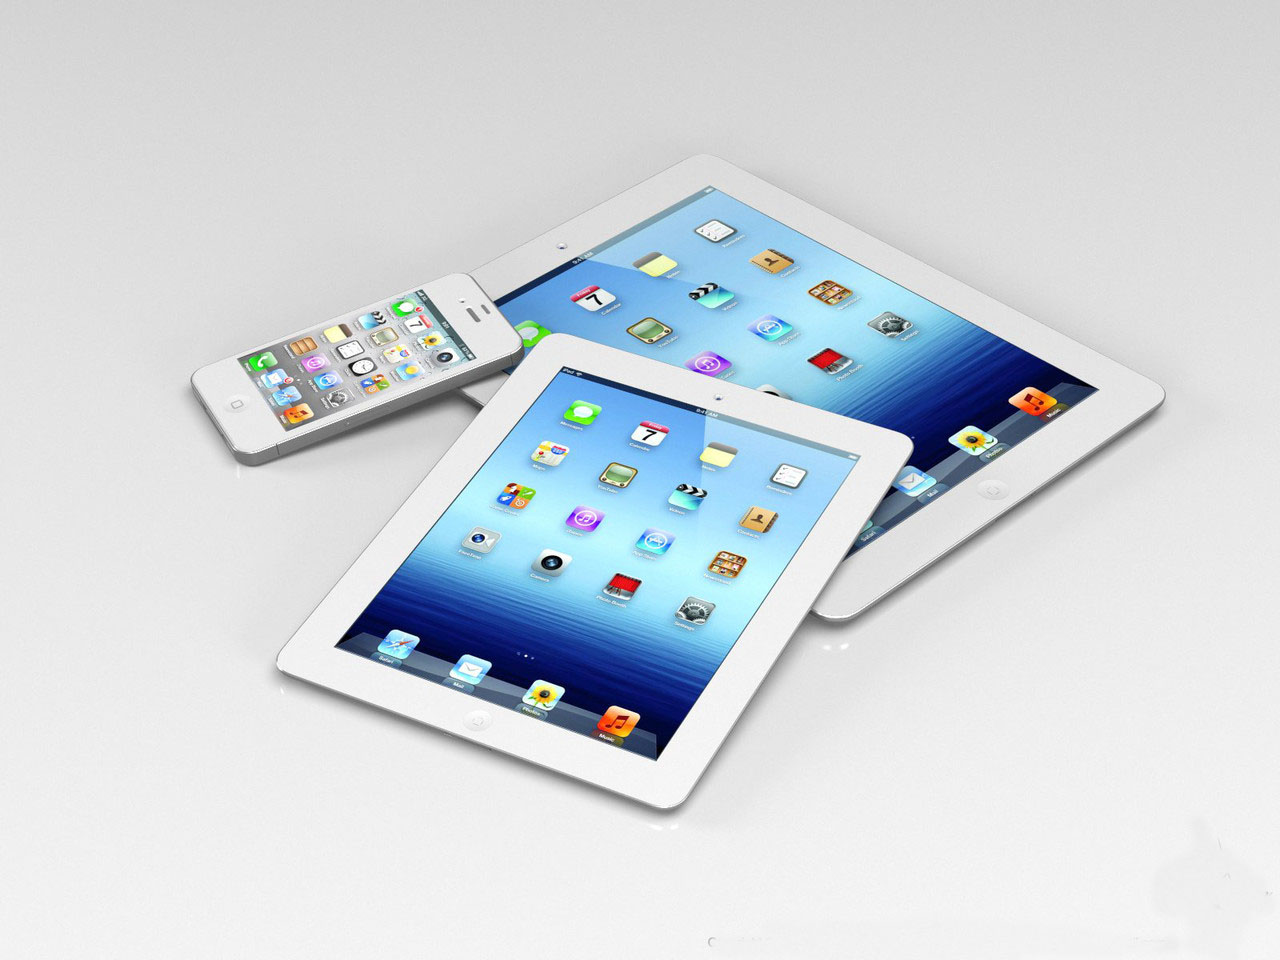 ремонт Apple Ipad Iphone в Рязани